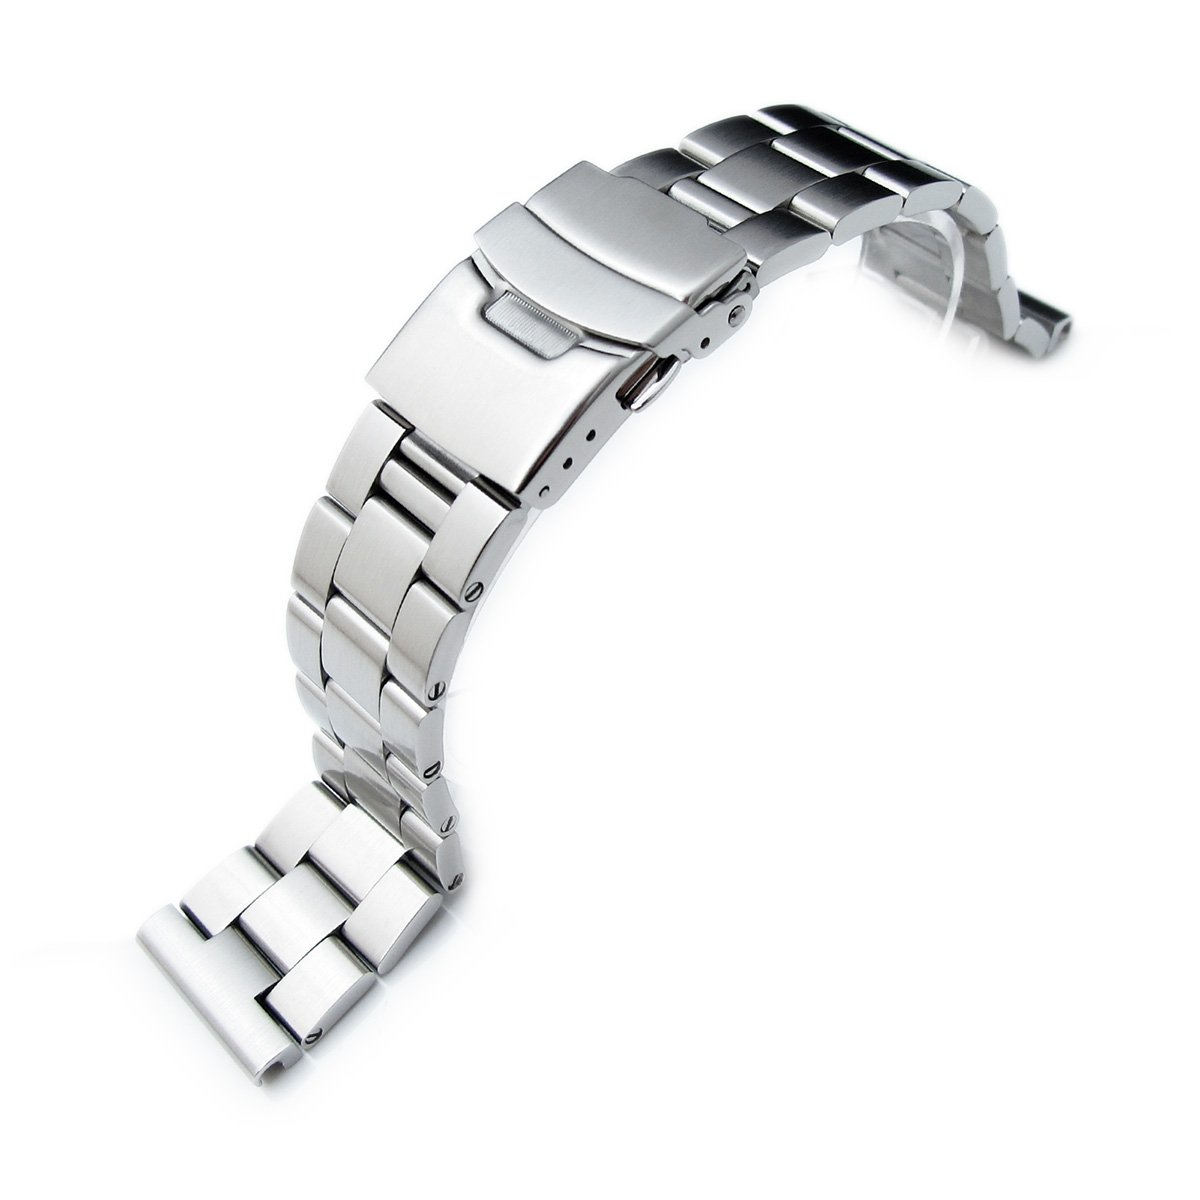 22mm L316 Solid Stainless Steel Oyster Straight End Watch Band for Seiko SKX007